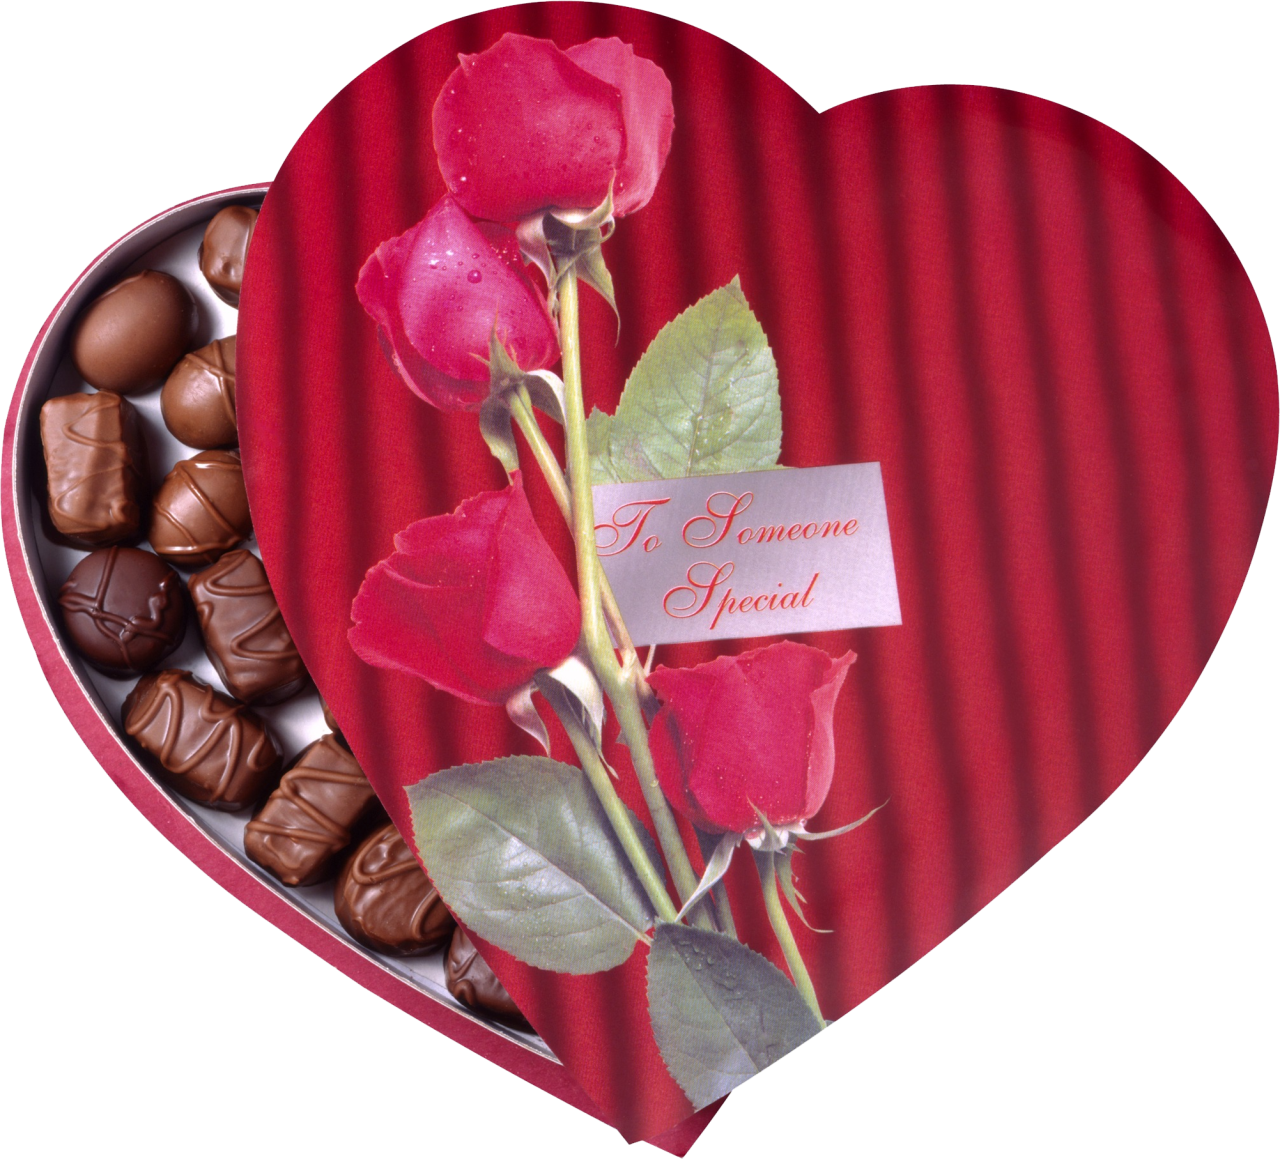 Chocolate box png. Image heart clipart shaped